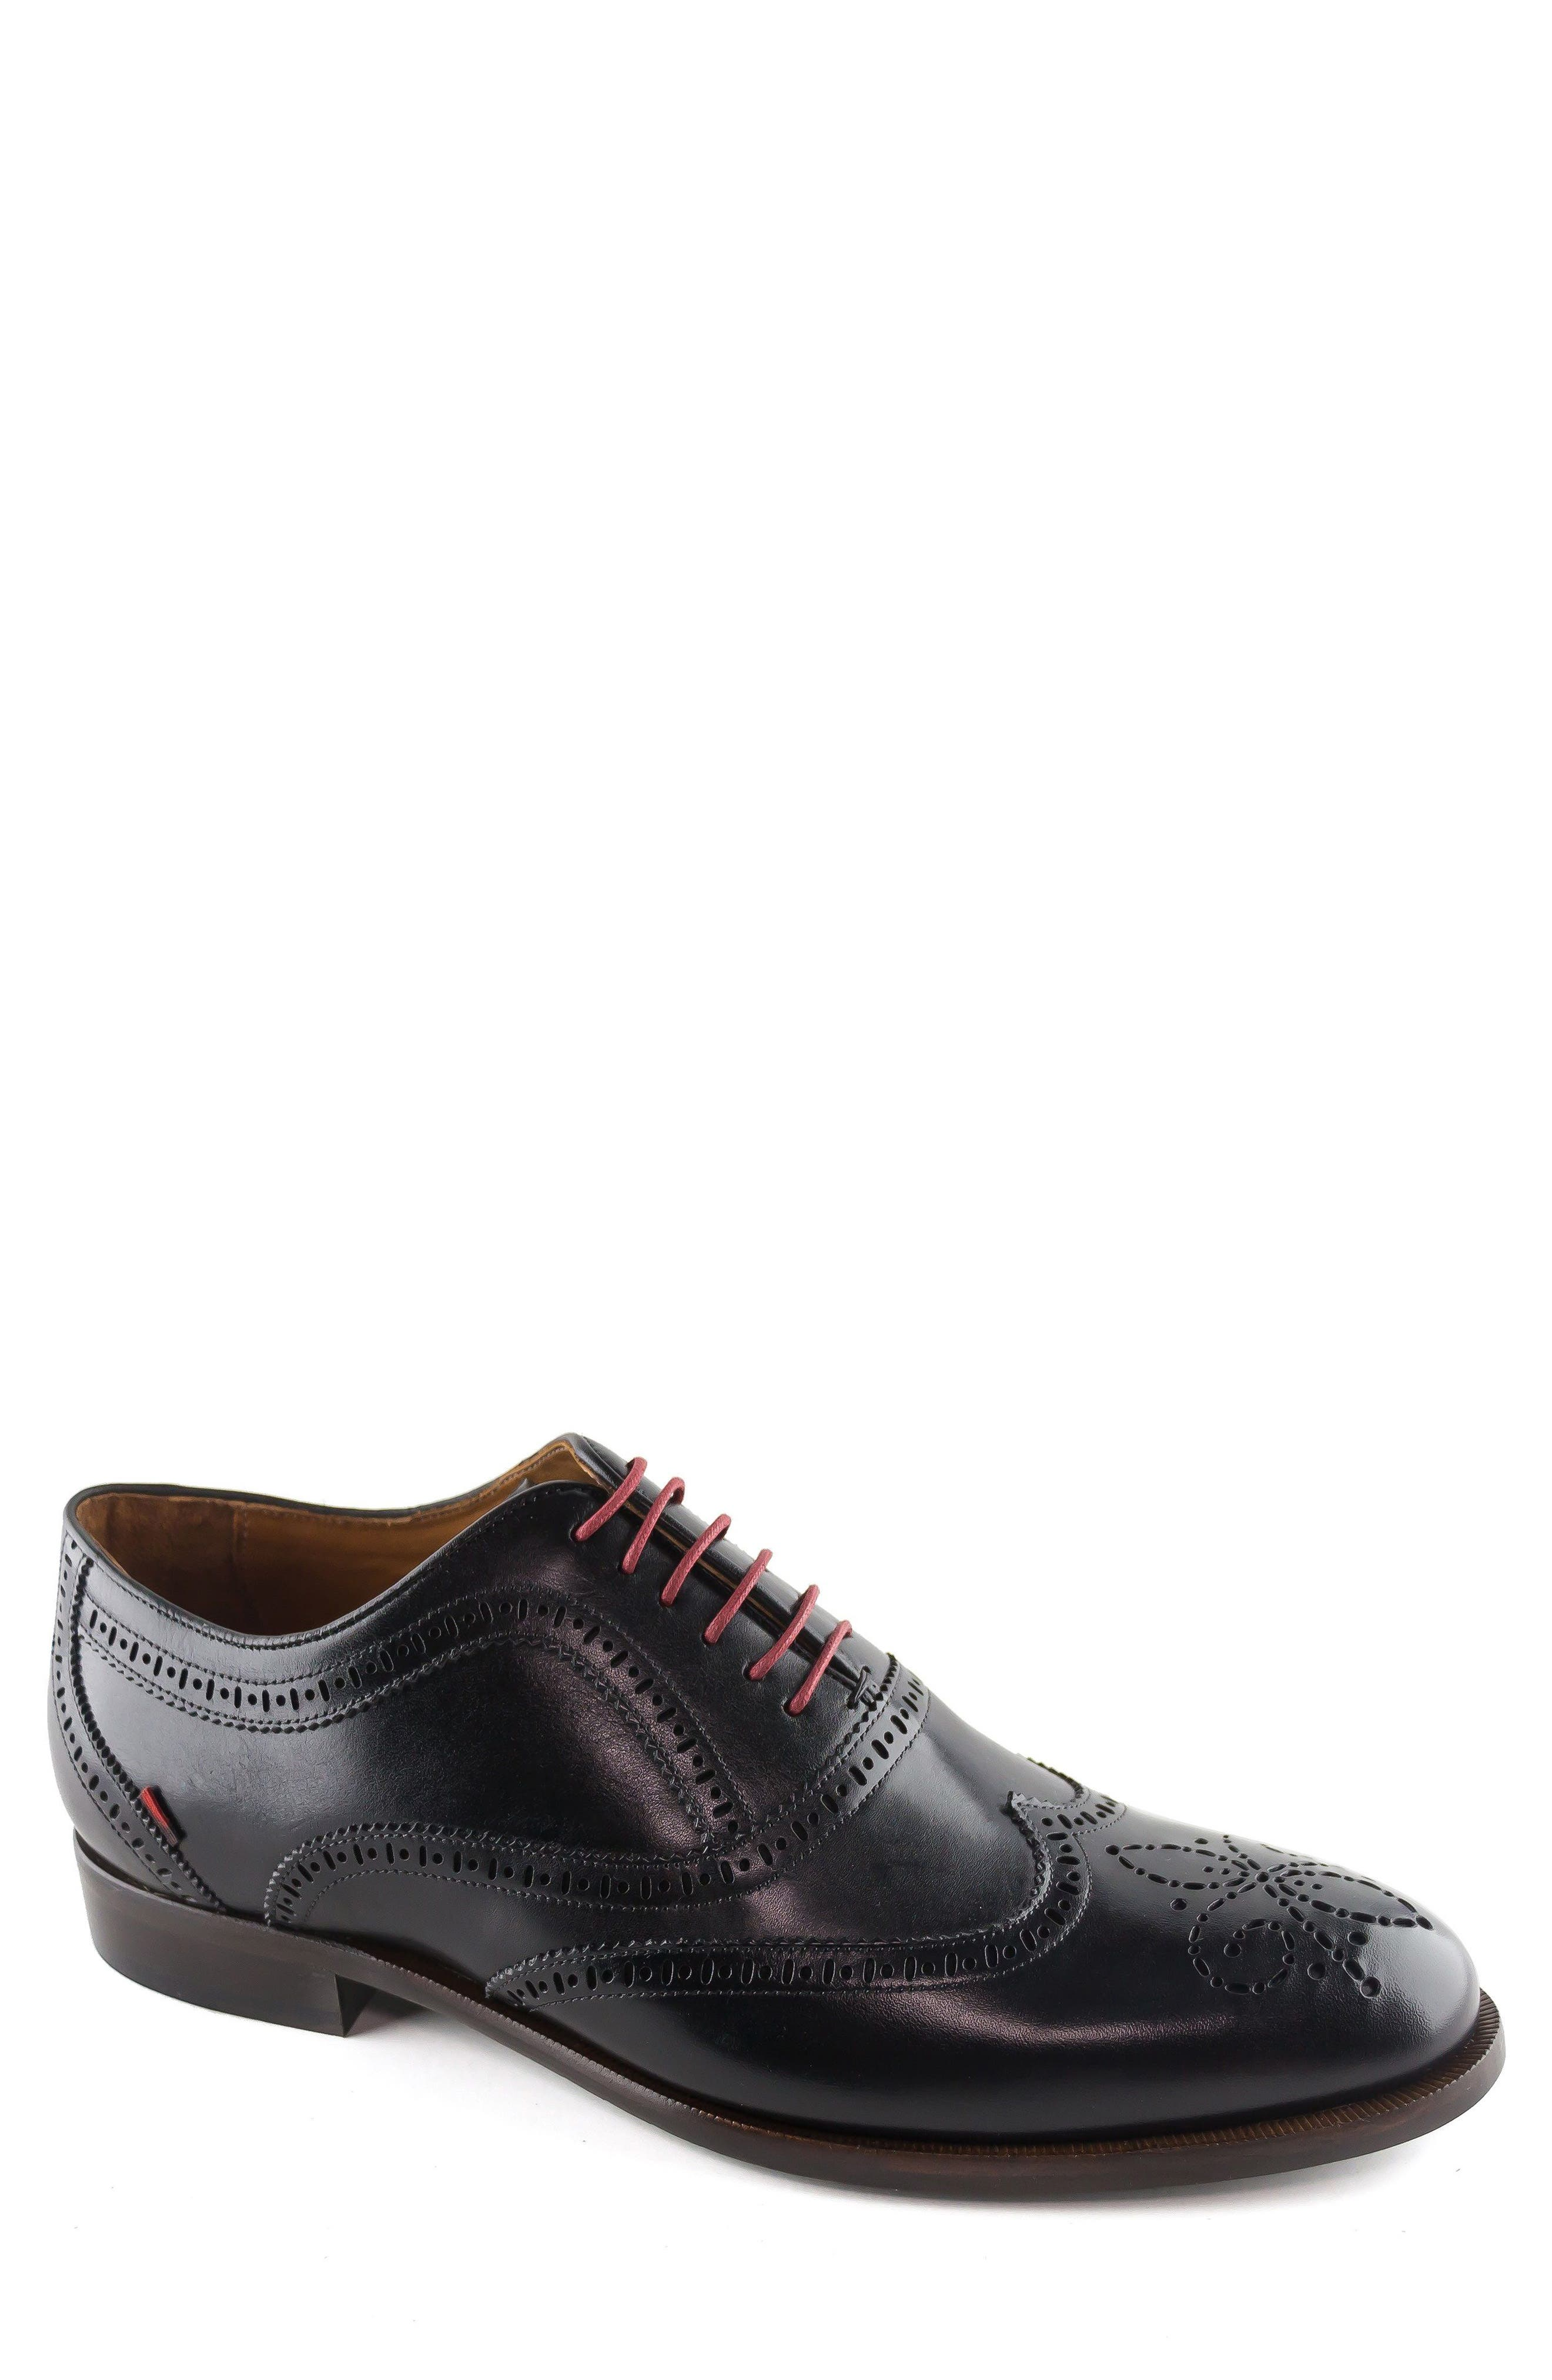 MARC JOSEPH NEW YORK, Madison Wingtip Oxford, Main thumbnail 1, color, 001